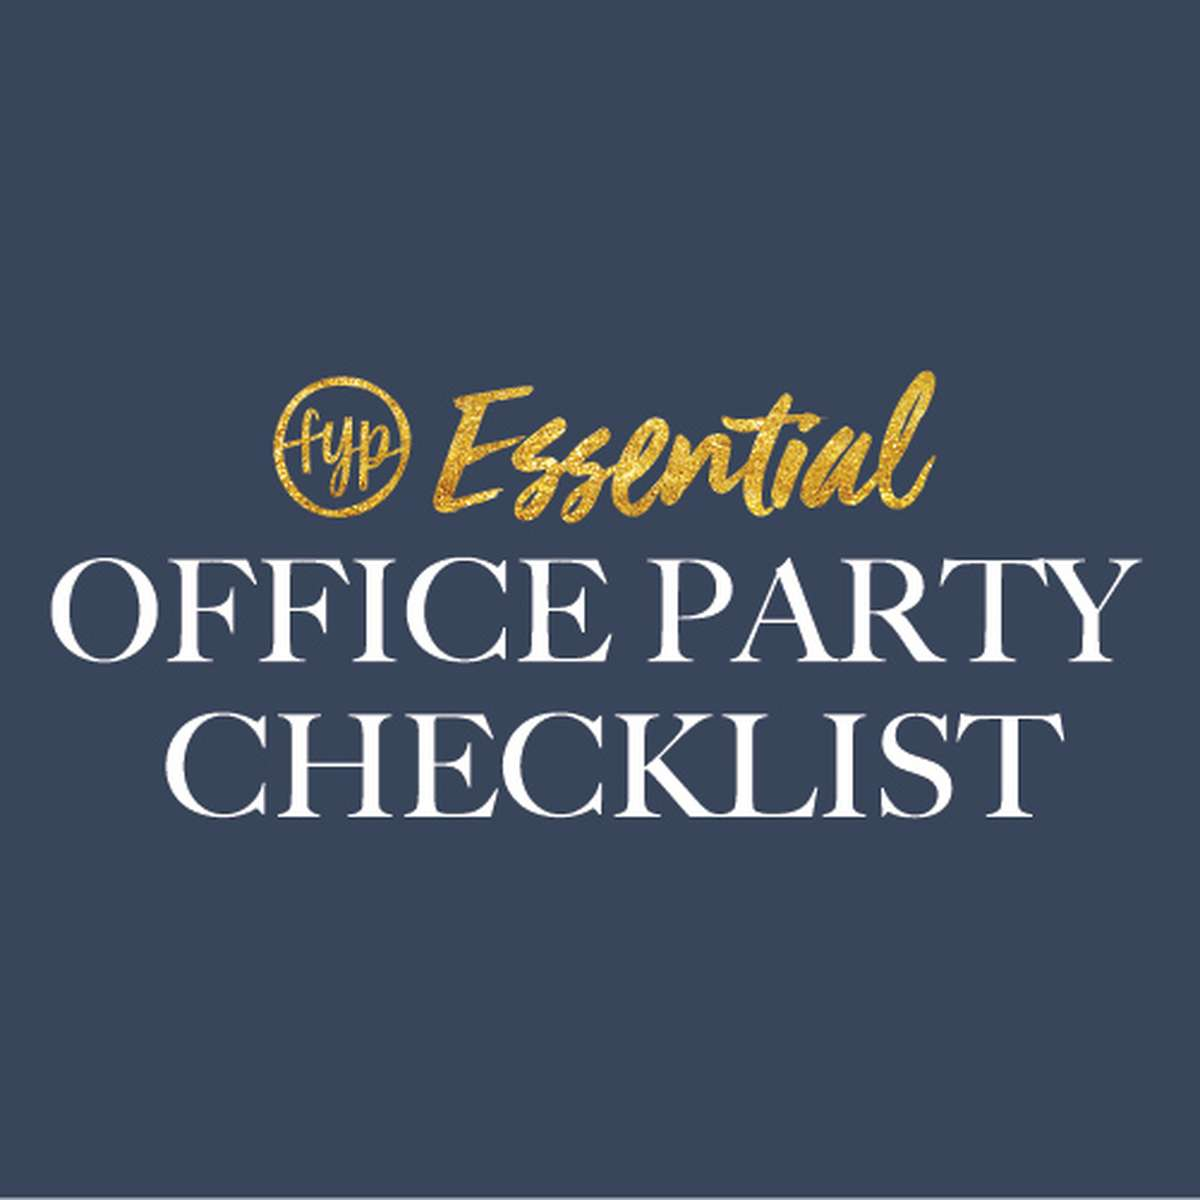 Office Party Planning Checklist